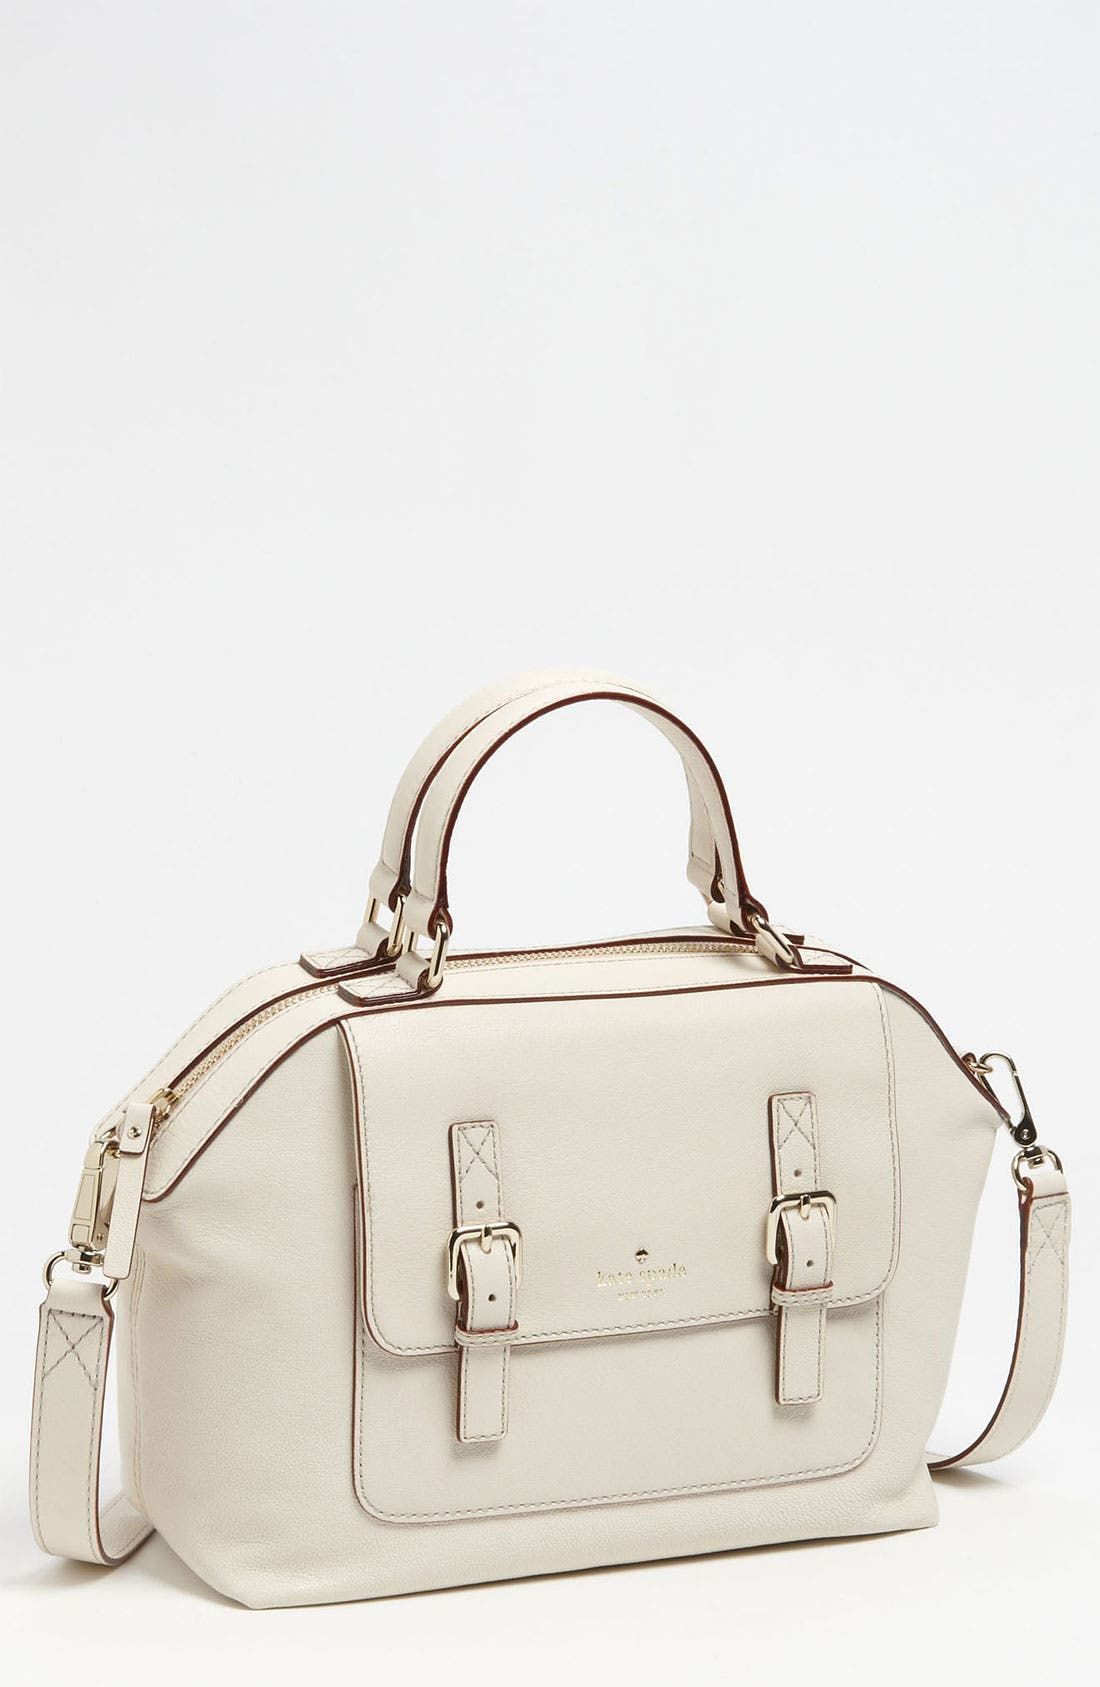 Alternate Image 1 Selected - kate spade new york 'allen street - raquelle' satchel